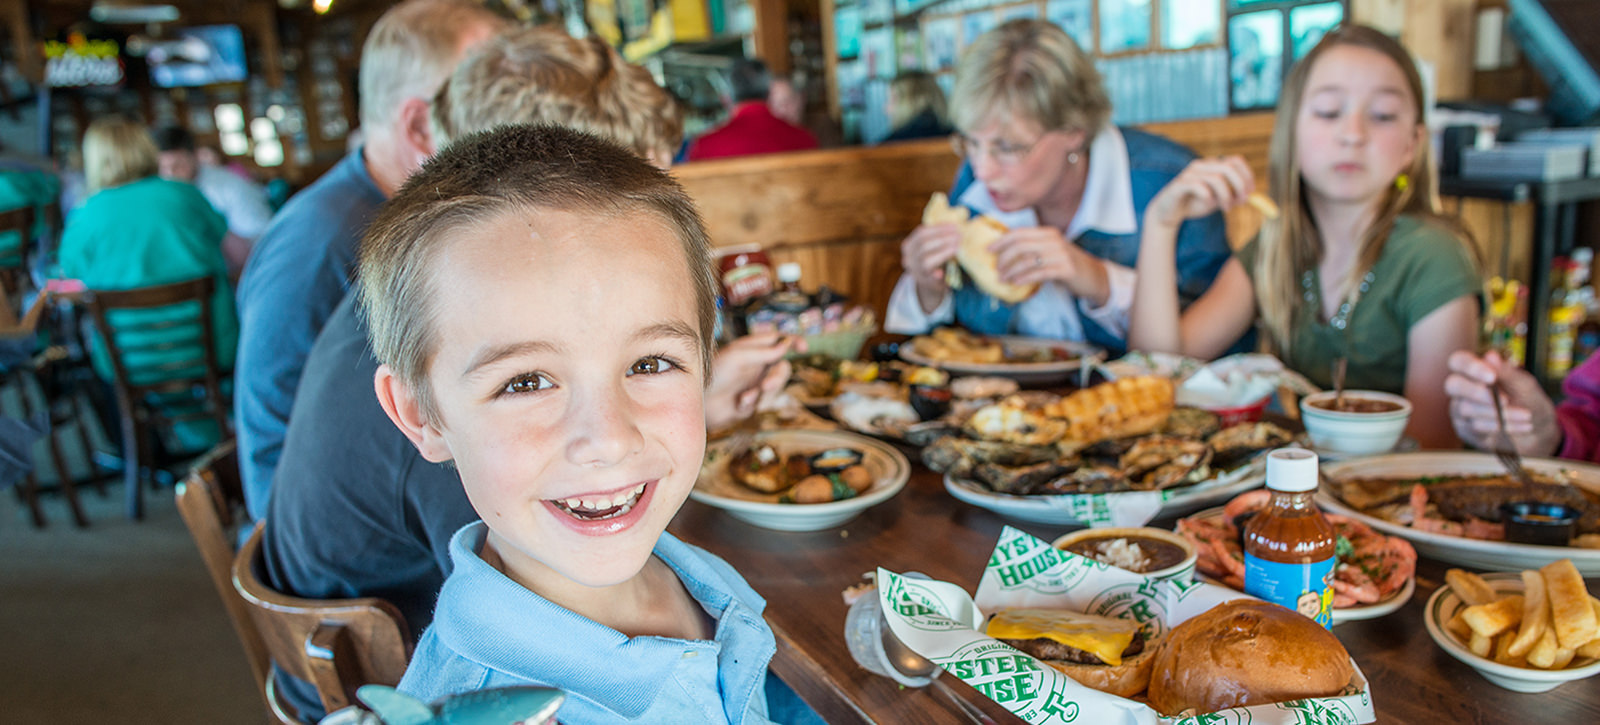 Family eating seafood at Original Oyster House Restaurant with boy smiling